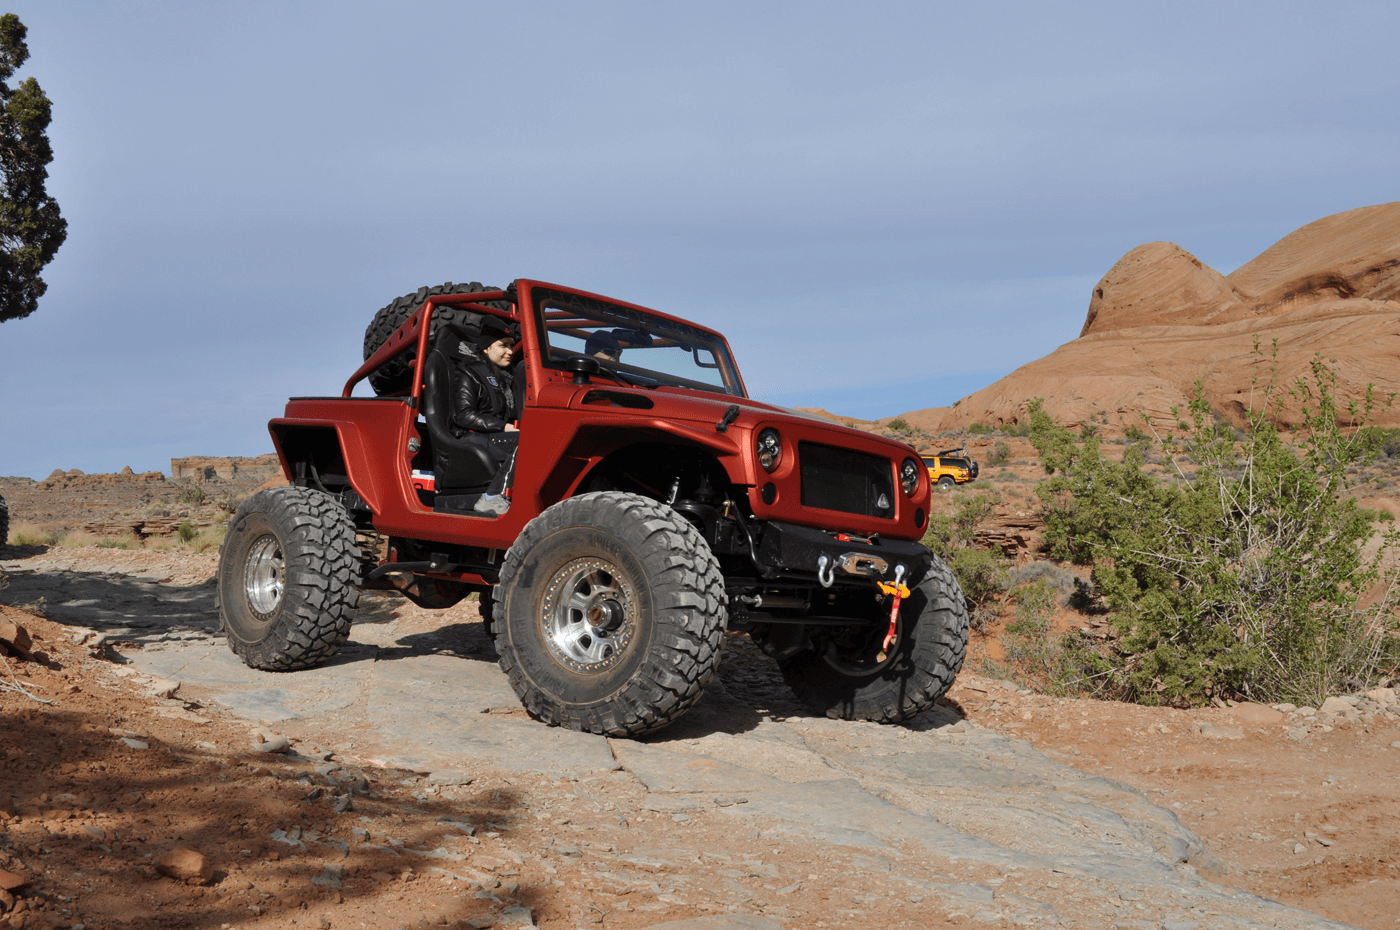 The Wheel Package On This Jeep Is Suited For Rock Crawling As The Smaller  Wheel And Larger Tire Allow The Tire To Flex And Better Grip The Terrain.